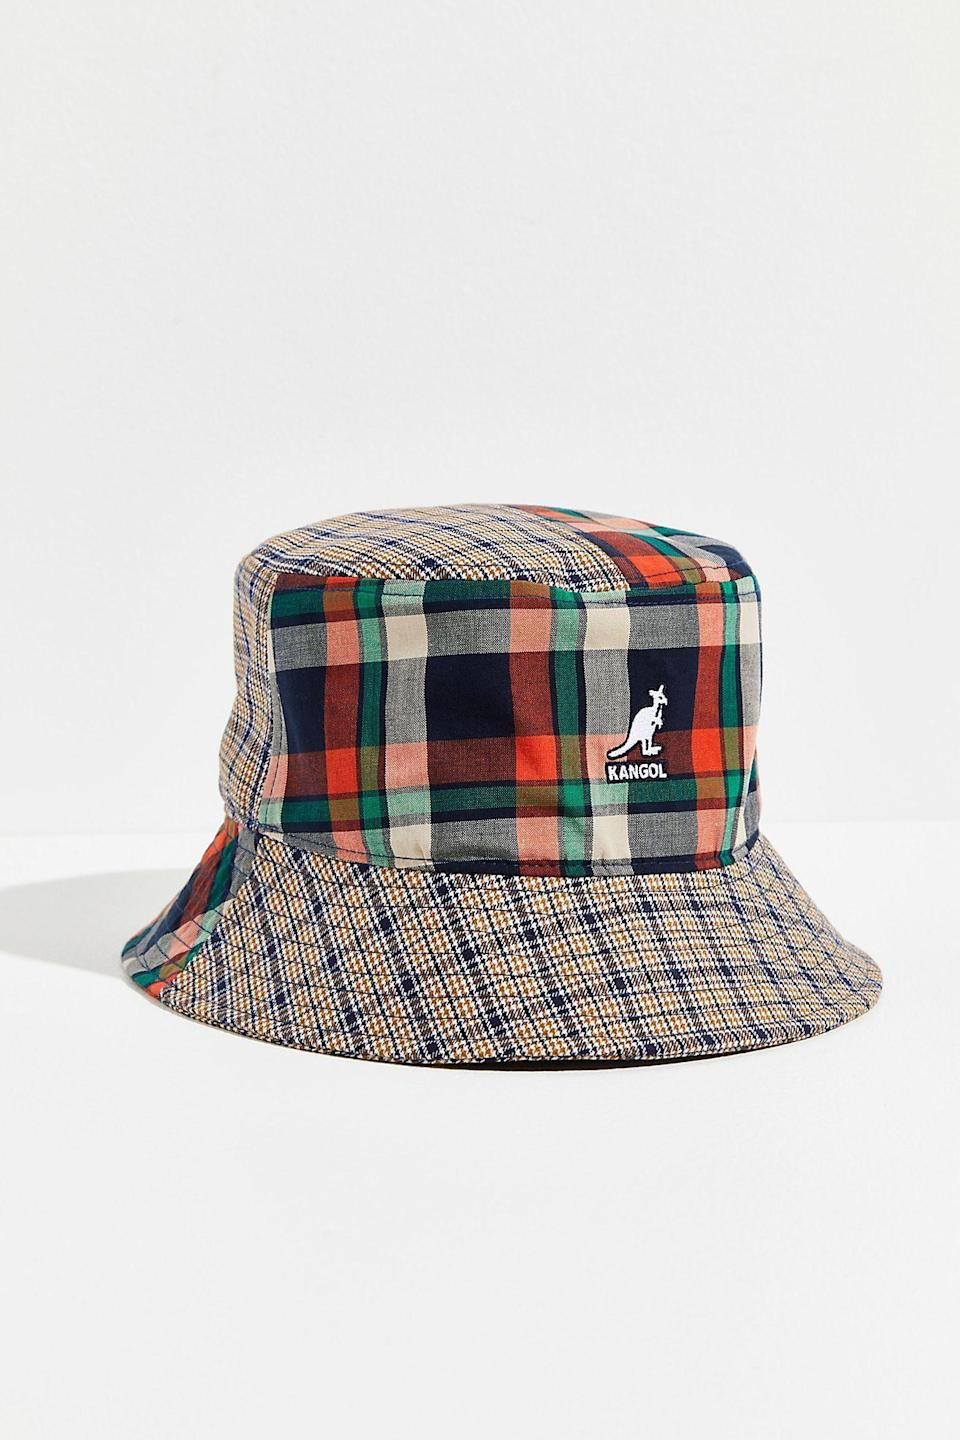 """<p><strong>Kangol</strong></p><p>freepeople.com</p><p><strong>$50.00</strong></p><p><a href=""""https://go.redirectingat.com?id=74968X1596630&url=https%3A%2F%2Fwww.freepeople.com%2Fshop%2Fkangol-plaid-mash-up-bucket-hat%2F&sref=https%3A%2F%2Fwww.countryliving.com%2Fshopping%2Fg37003543%2Ffall-hats-women%2F"""" rel=""""nofollow noopener"""" target=""""_blank"""" data-ylk=""""slk:SHOP NOW"""" class=""""link rapid-noclick-resp"""">SHOP NOW</a></p><p>Also continuing on a 2021 style trend, mixed prints are a funky way to make your fall outfits looking fun and fresh. This 90s-inspired cotton hat has a timeless bucket-shape silhouette with a wide brim and a mash-up of two different plaid prints. </p>"""